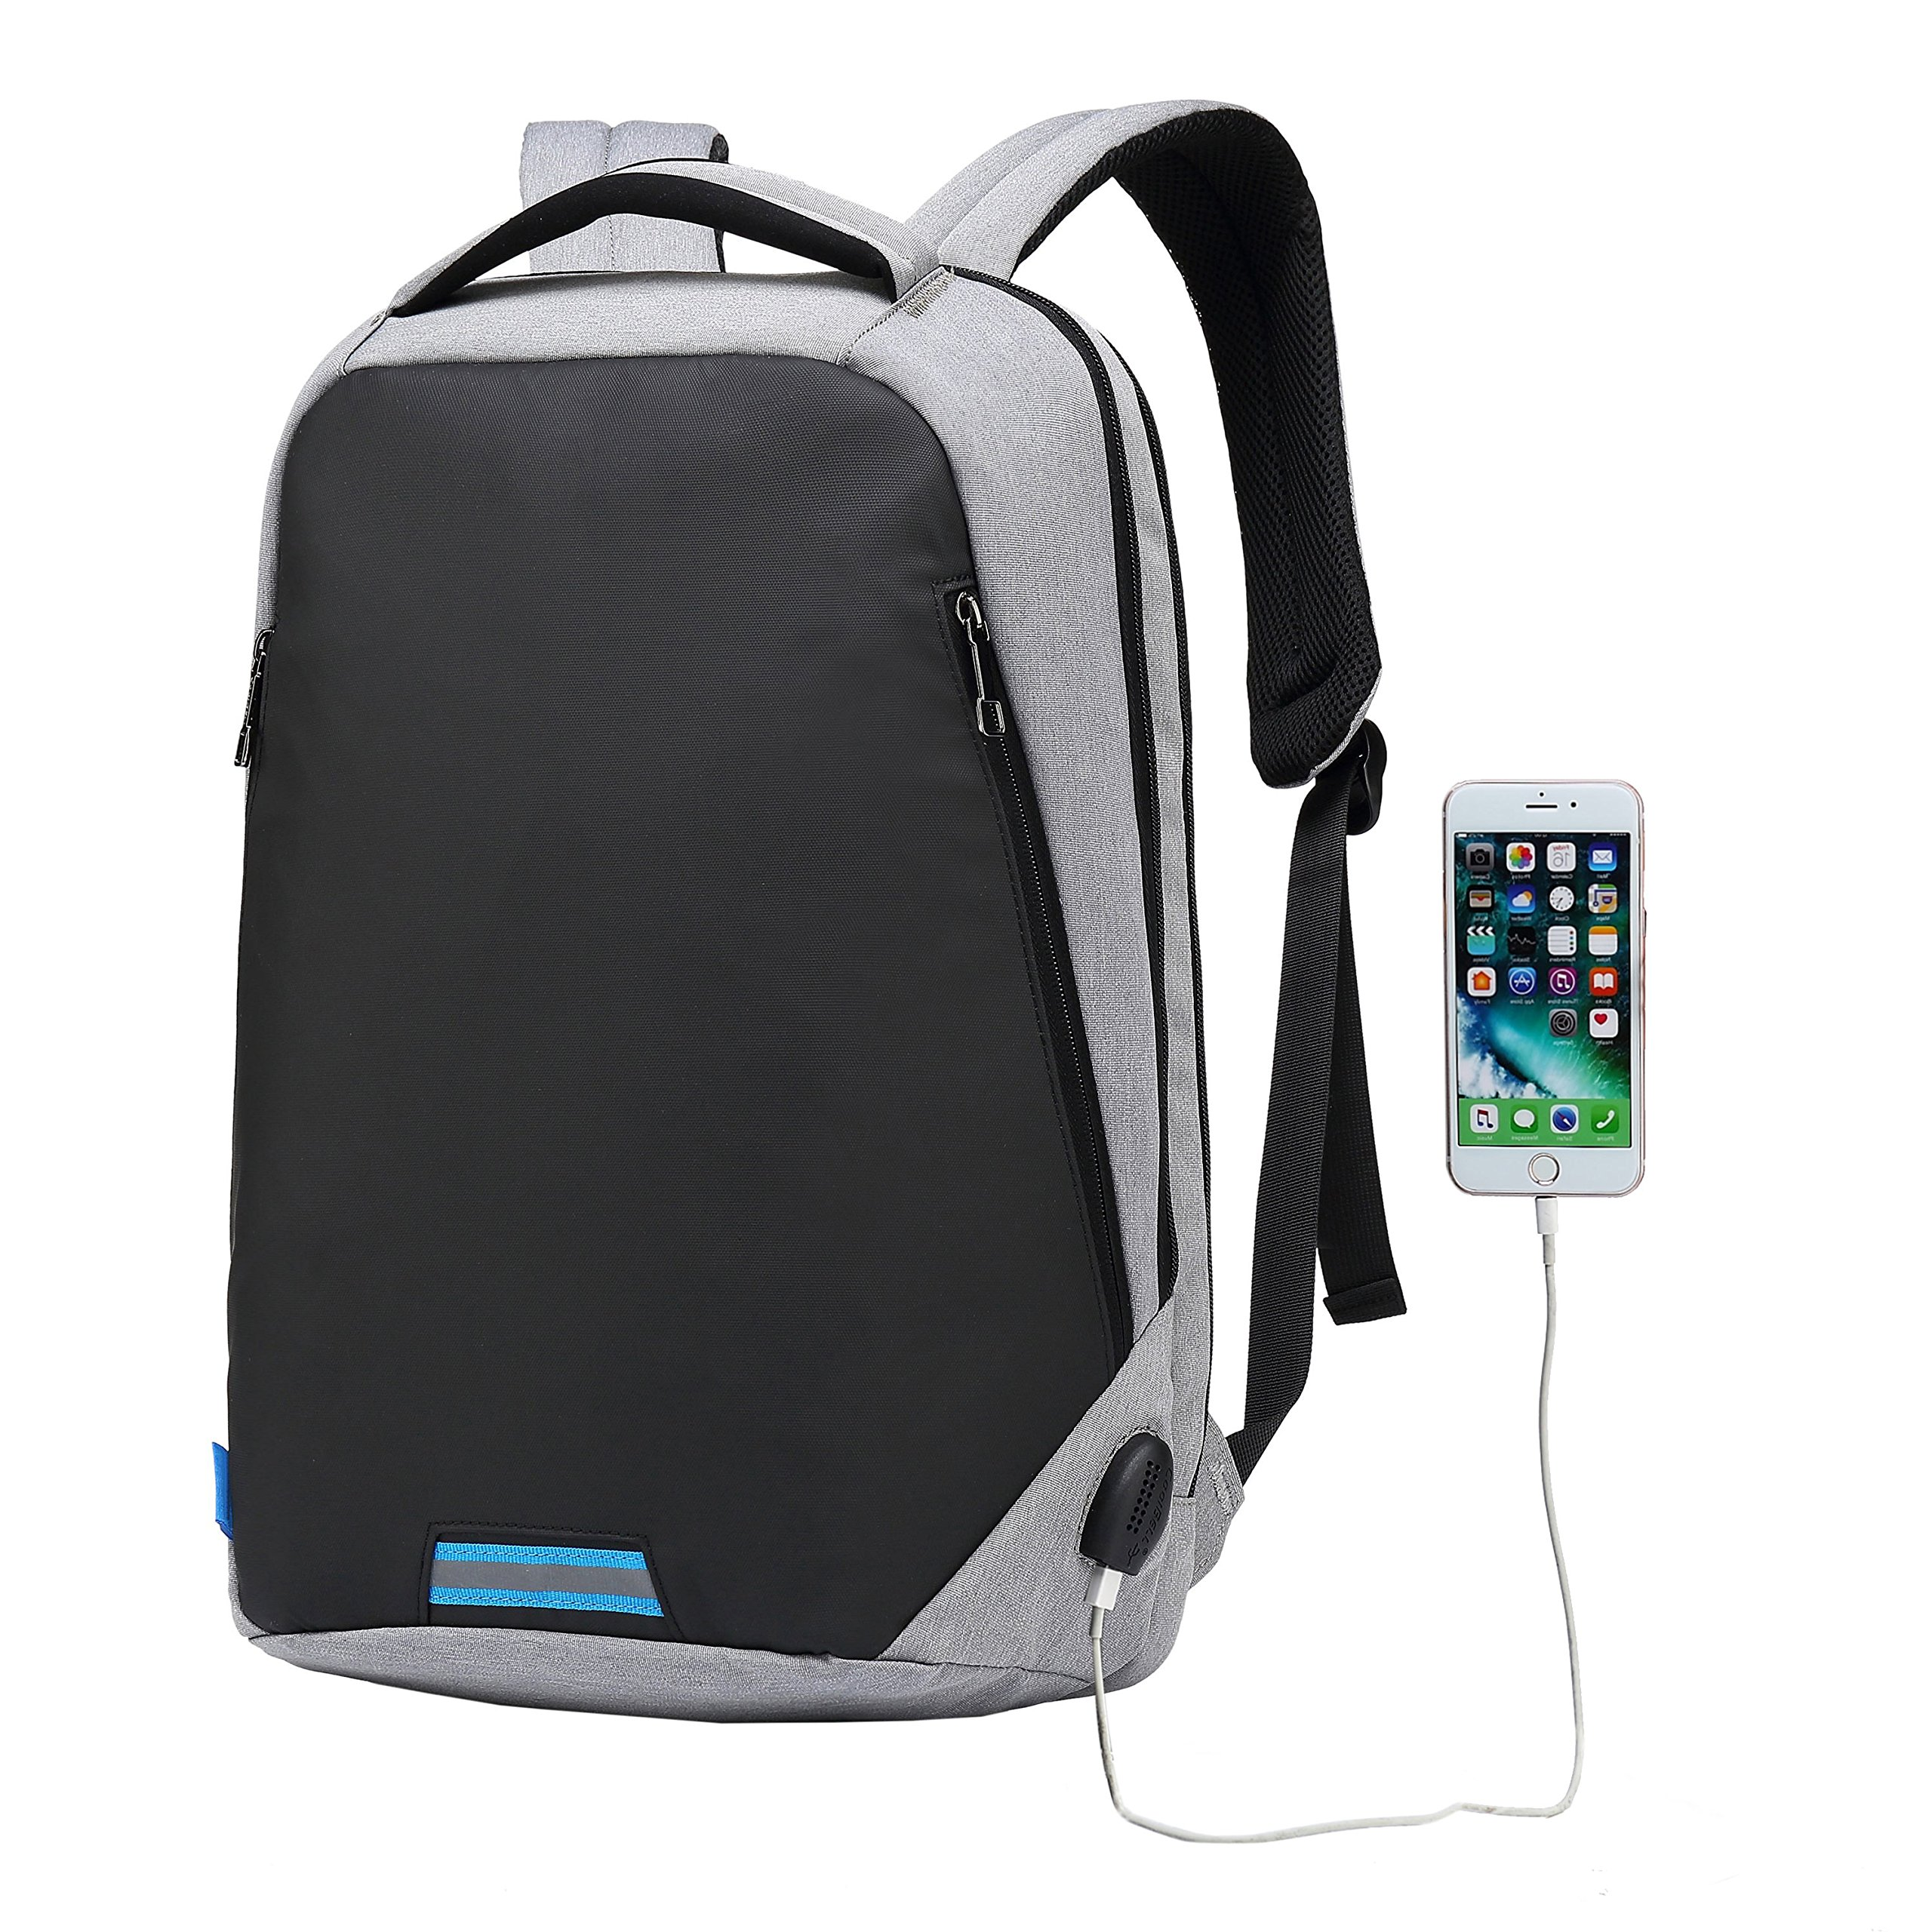 Commuter Backpacks 15 Inch Business Laptop Backpack for Men Women Waterproof Notebook Computer Backpack with USB Port